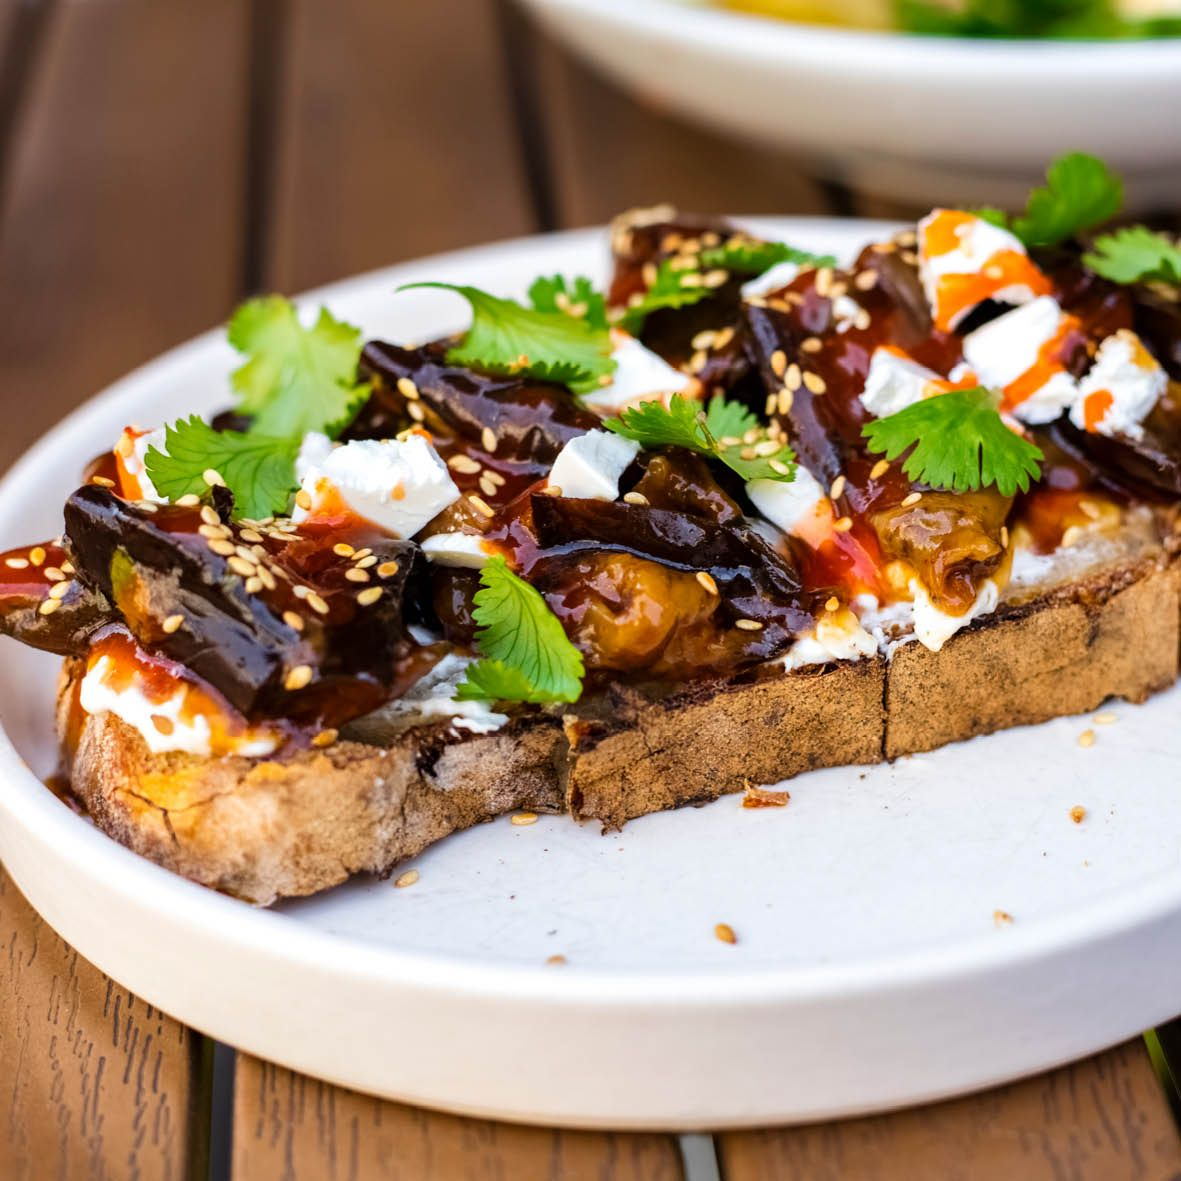 Eggplant_bruschetta_with_sweet_sauce_and_mozzarella.jpg